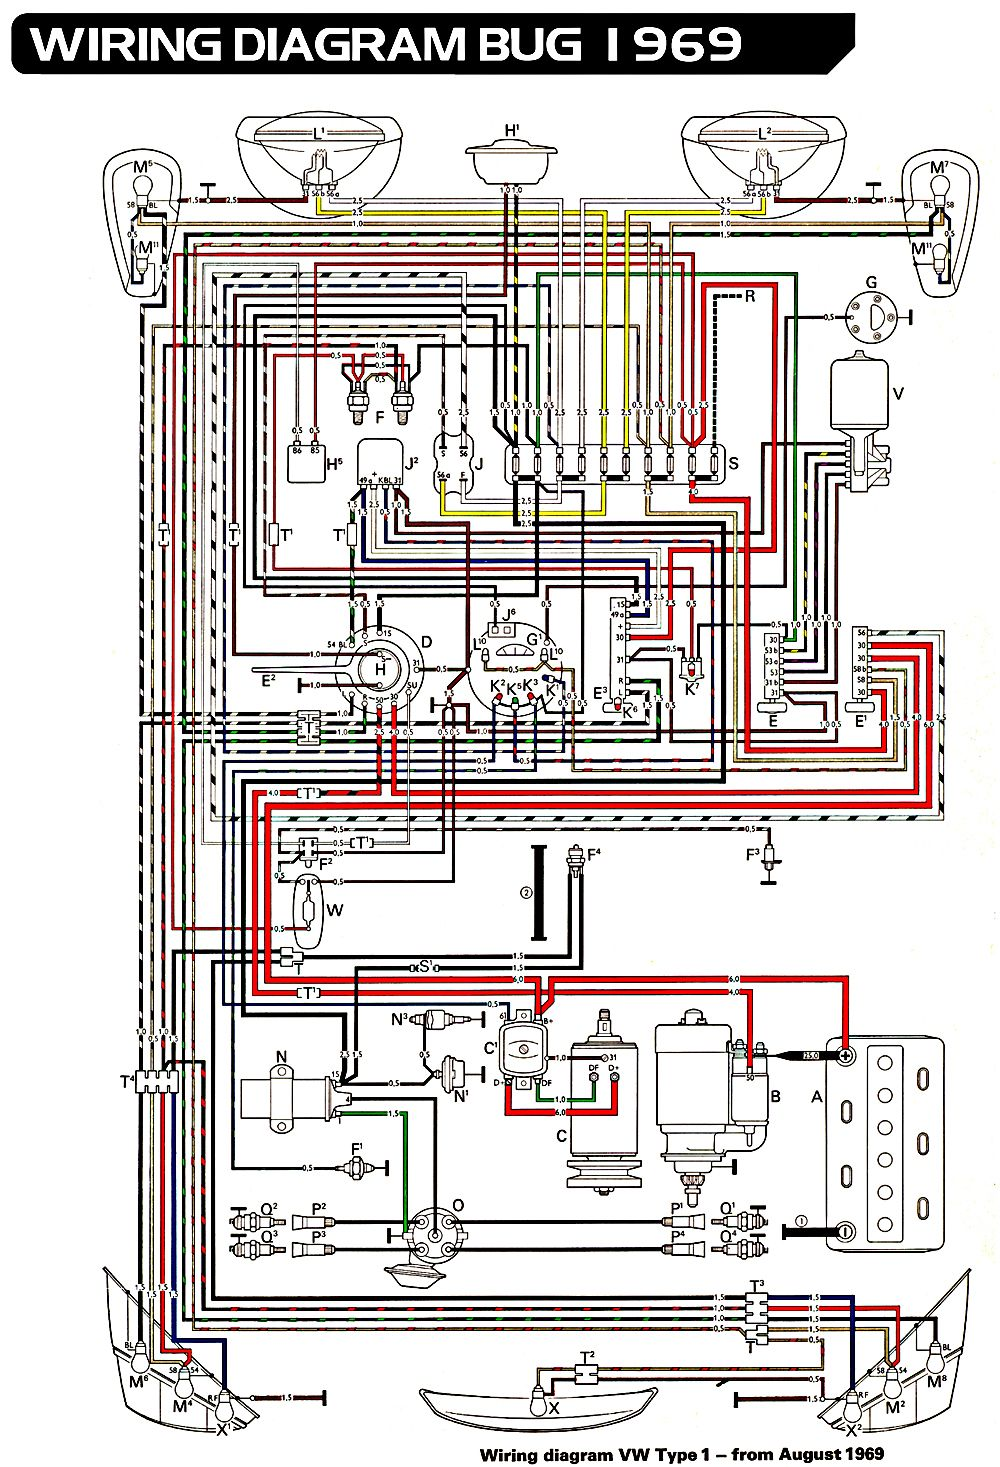 6d75c15875479254f26a32a8499d9044 vw type 1 wiring diagram 1961 vw type 1 wiring diagram \u2022 wiring vw type 3 wiring harness at cos-gaming.co